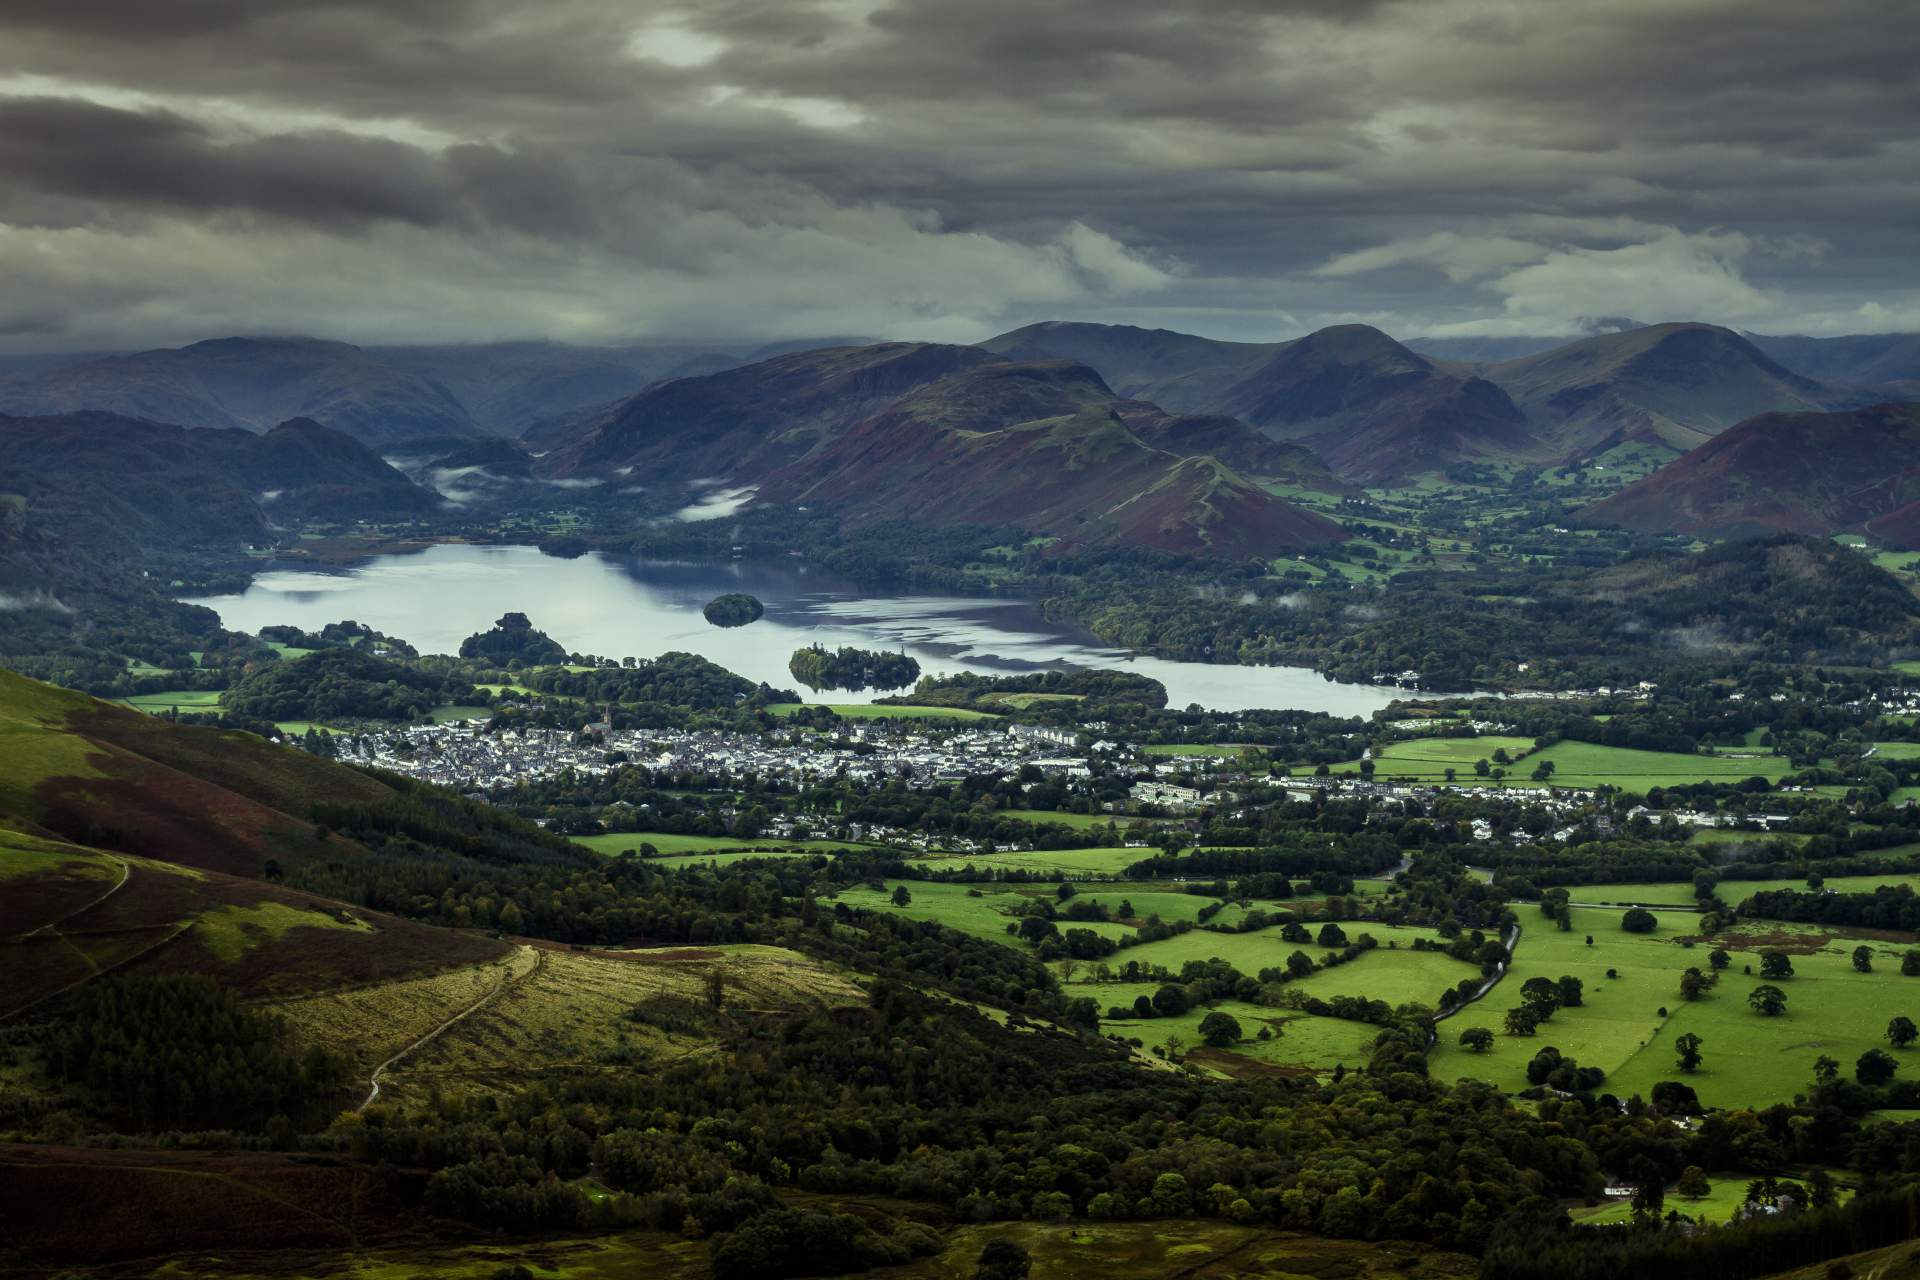 Busreis meerdaagse reis Lake District Keswick